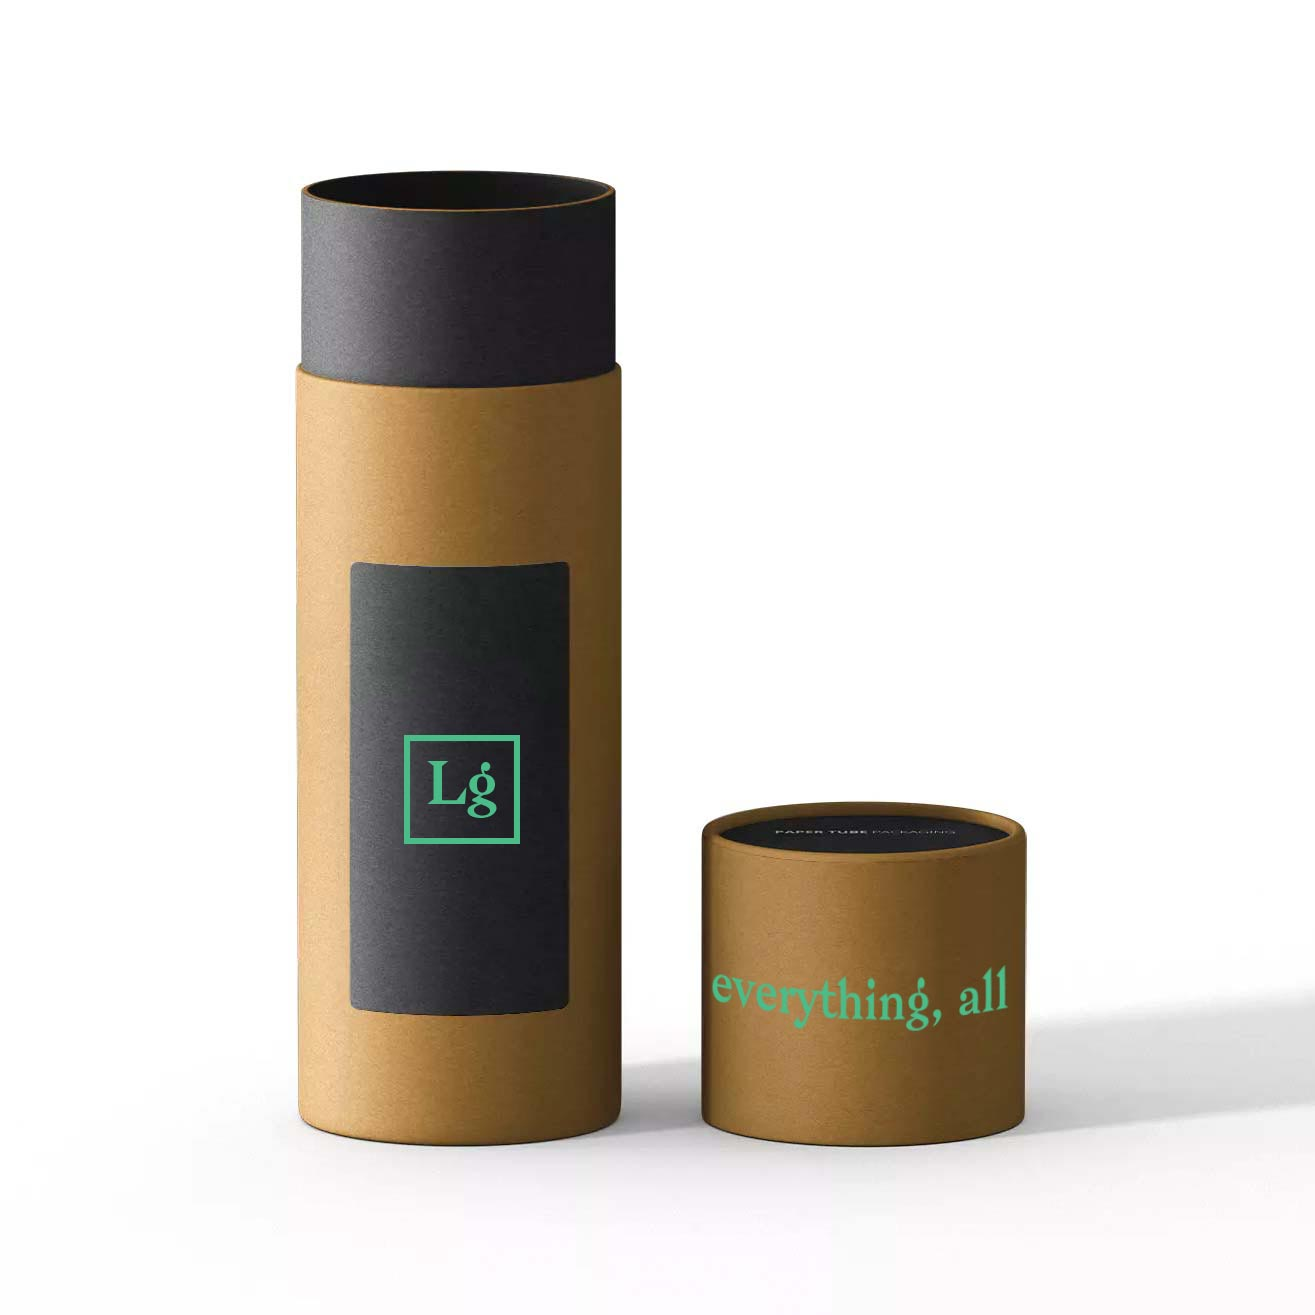 200314 custom t shirt tube with wrapped cap one color imprint on tube and cap 10 x 3 9 diameter